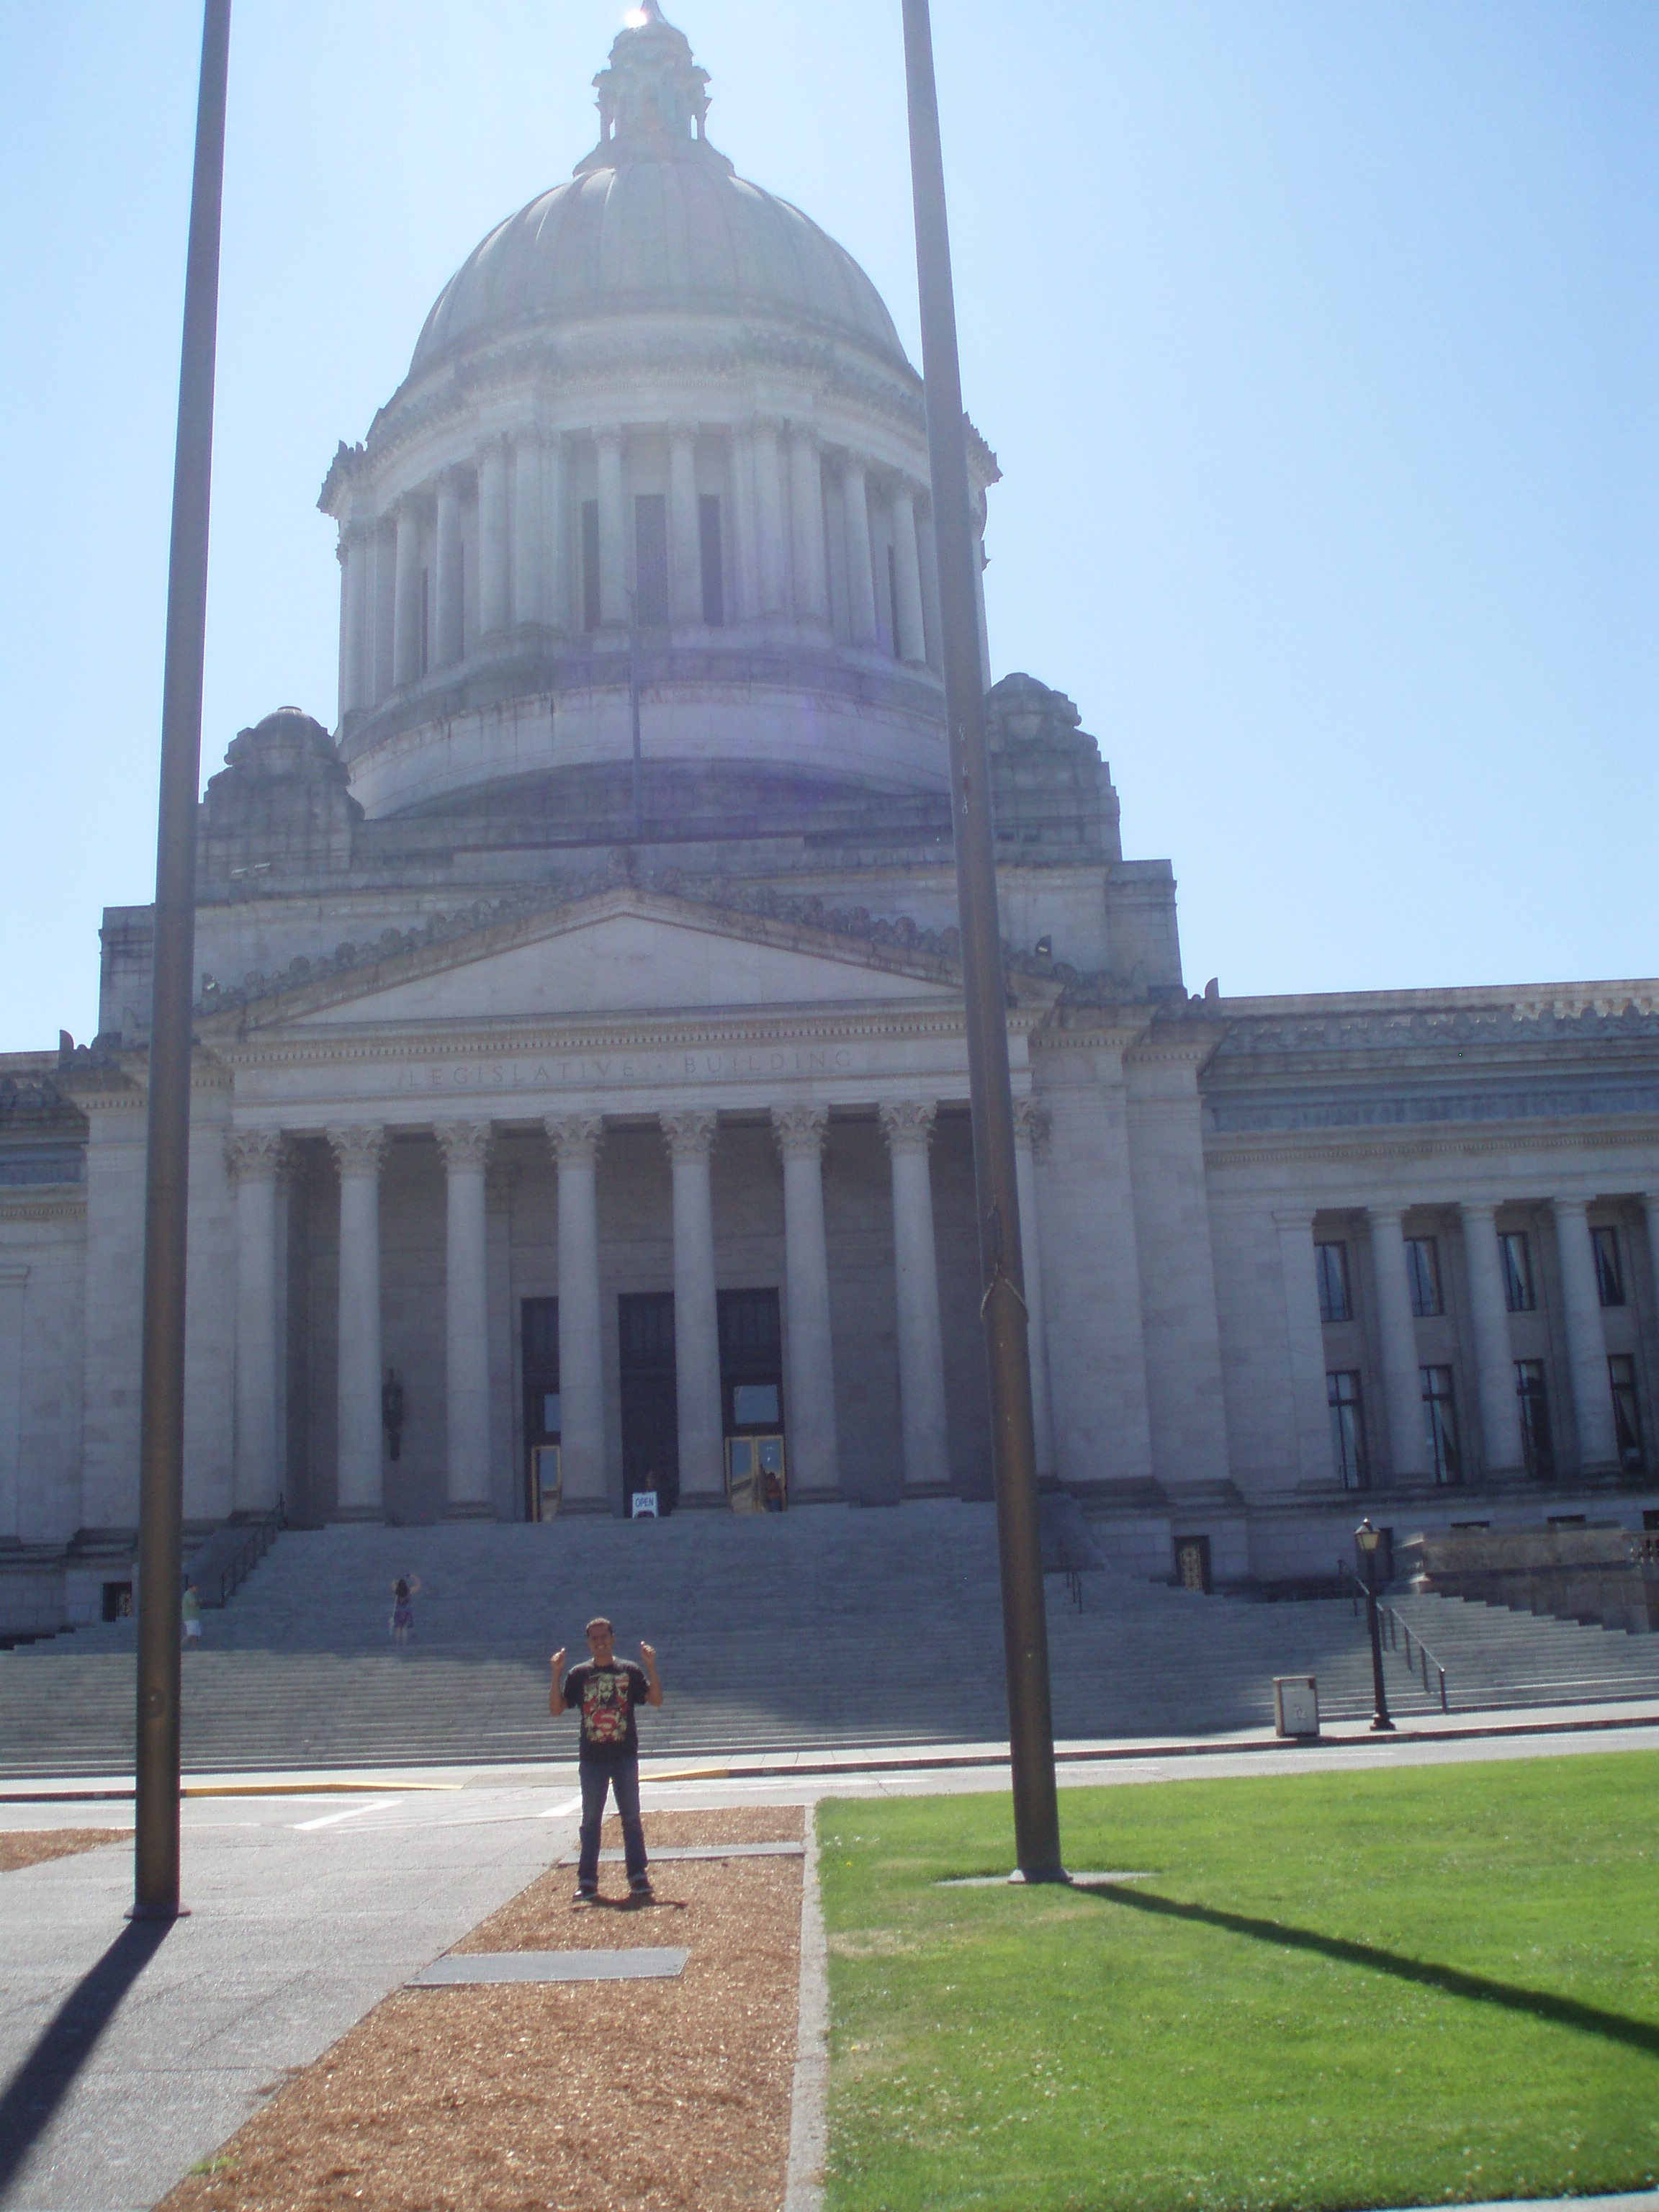 Olympia, Washington state capital